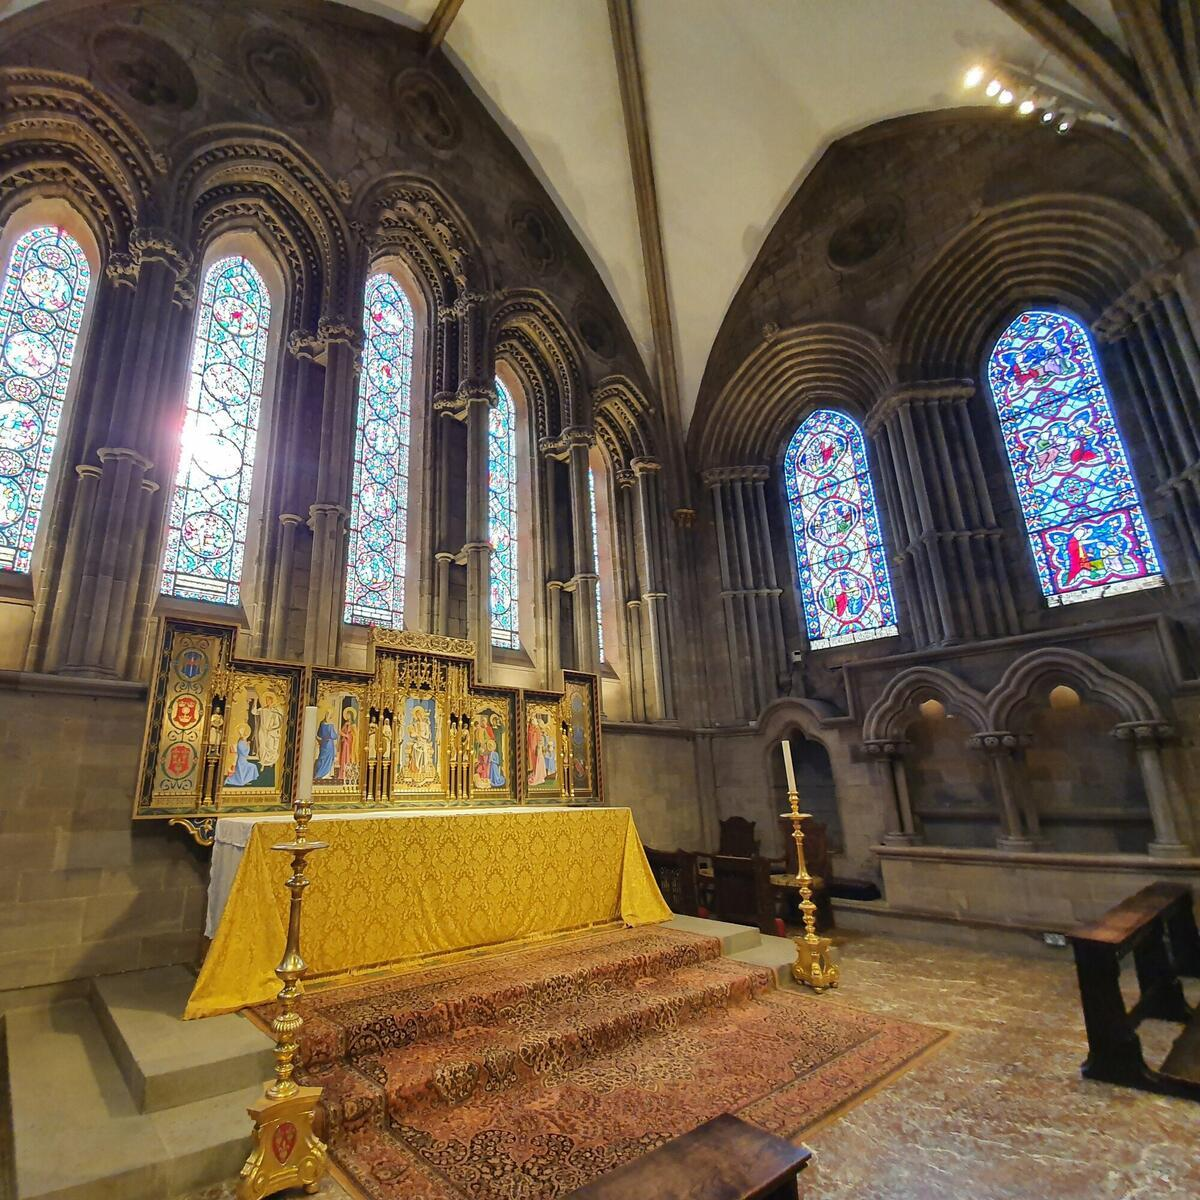 Lady Chapel at Hereford Cathedral by Abby Jones